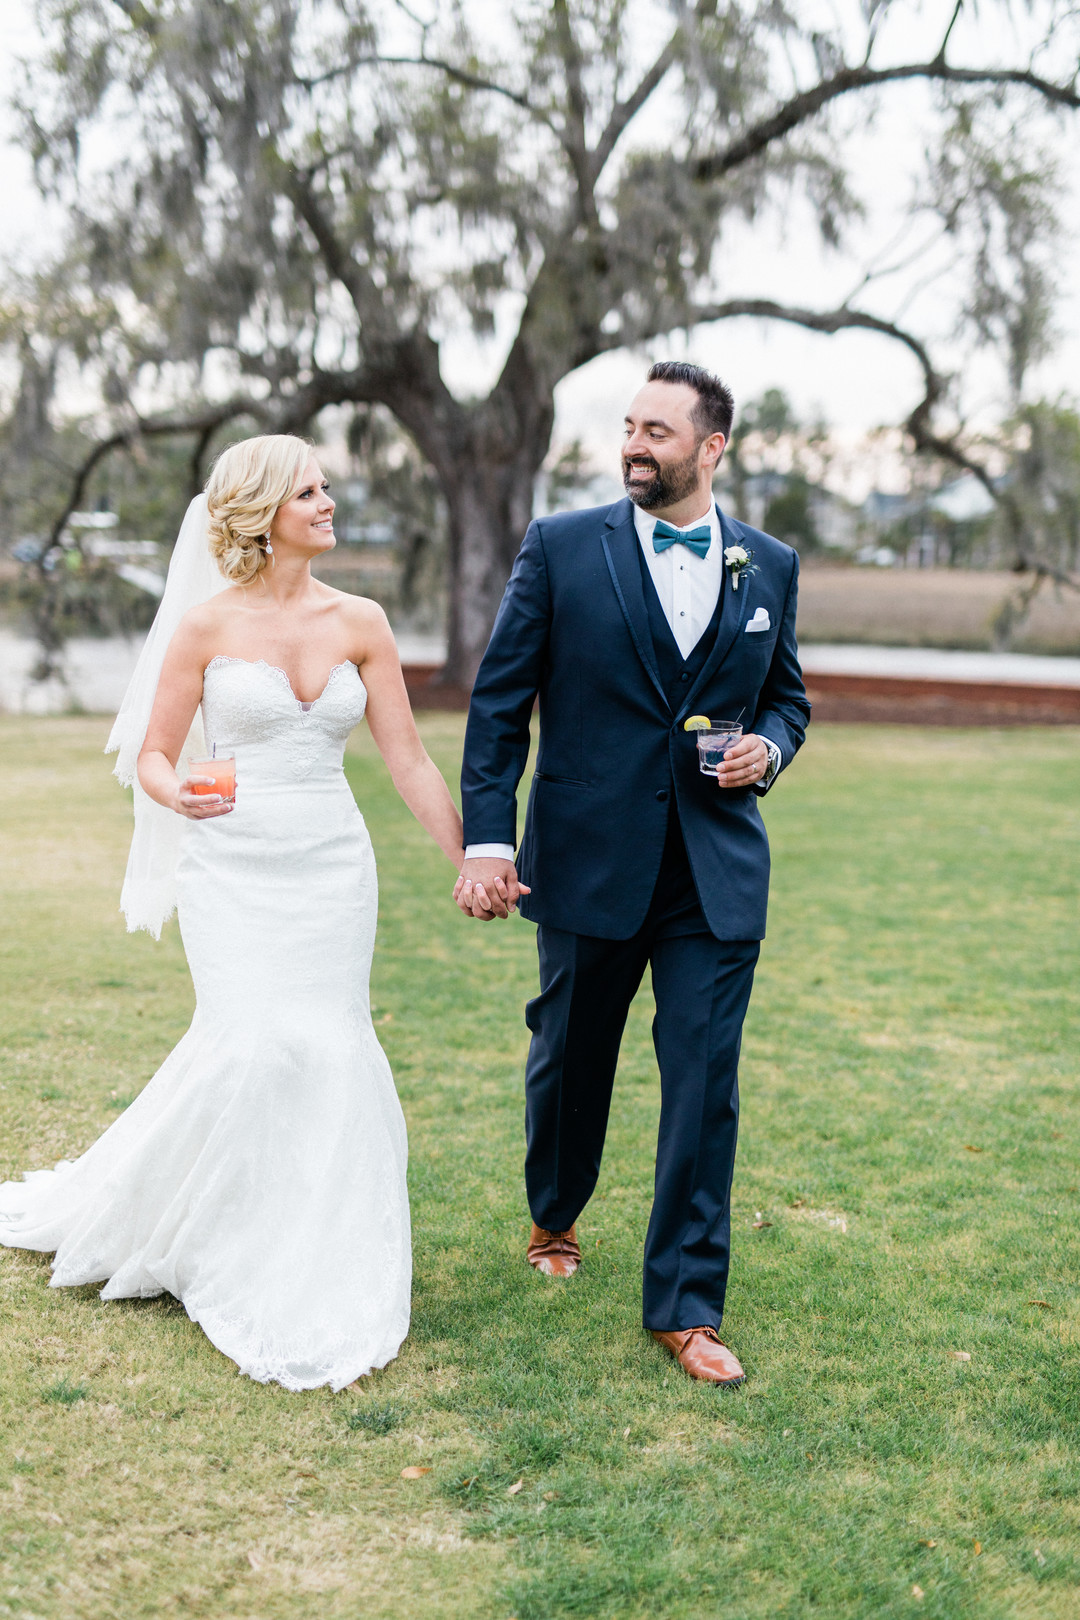 Sheorn_Snijders_CatherineAnnPhotography_catherineannphotographywedding31018carolineeric349_big.jpg